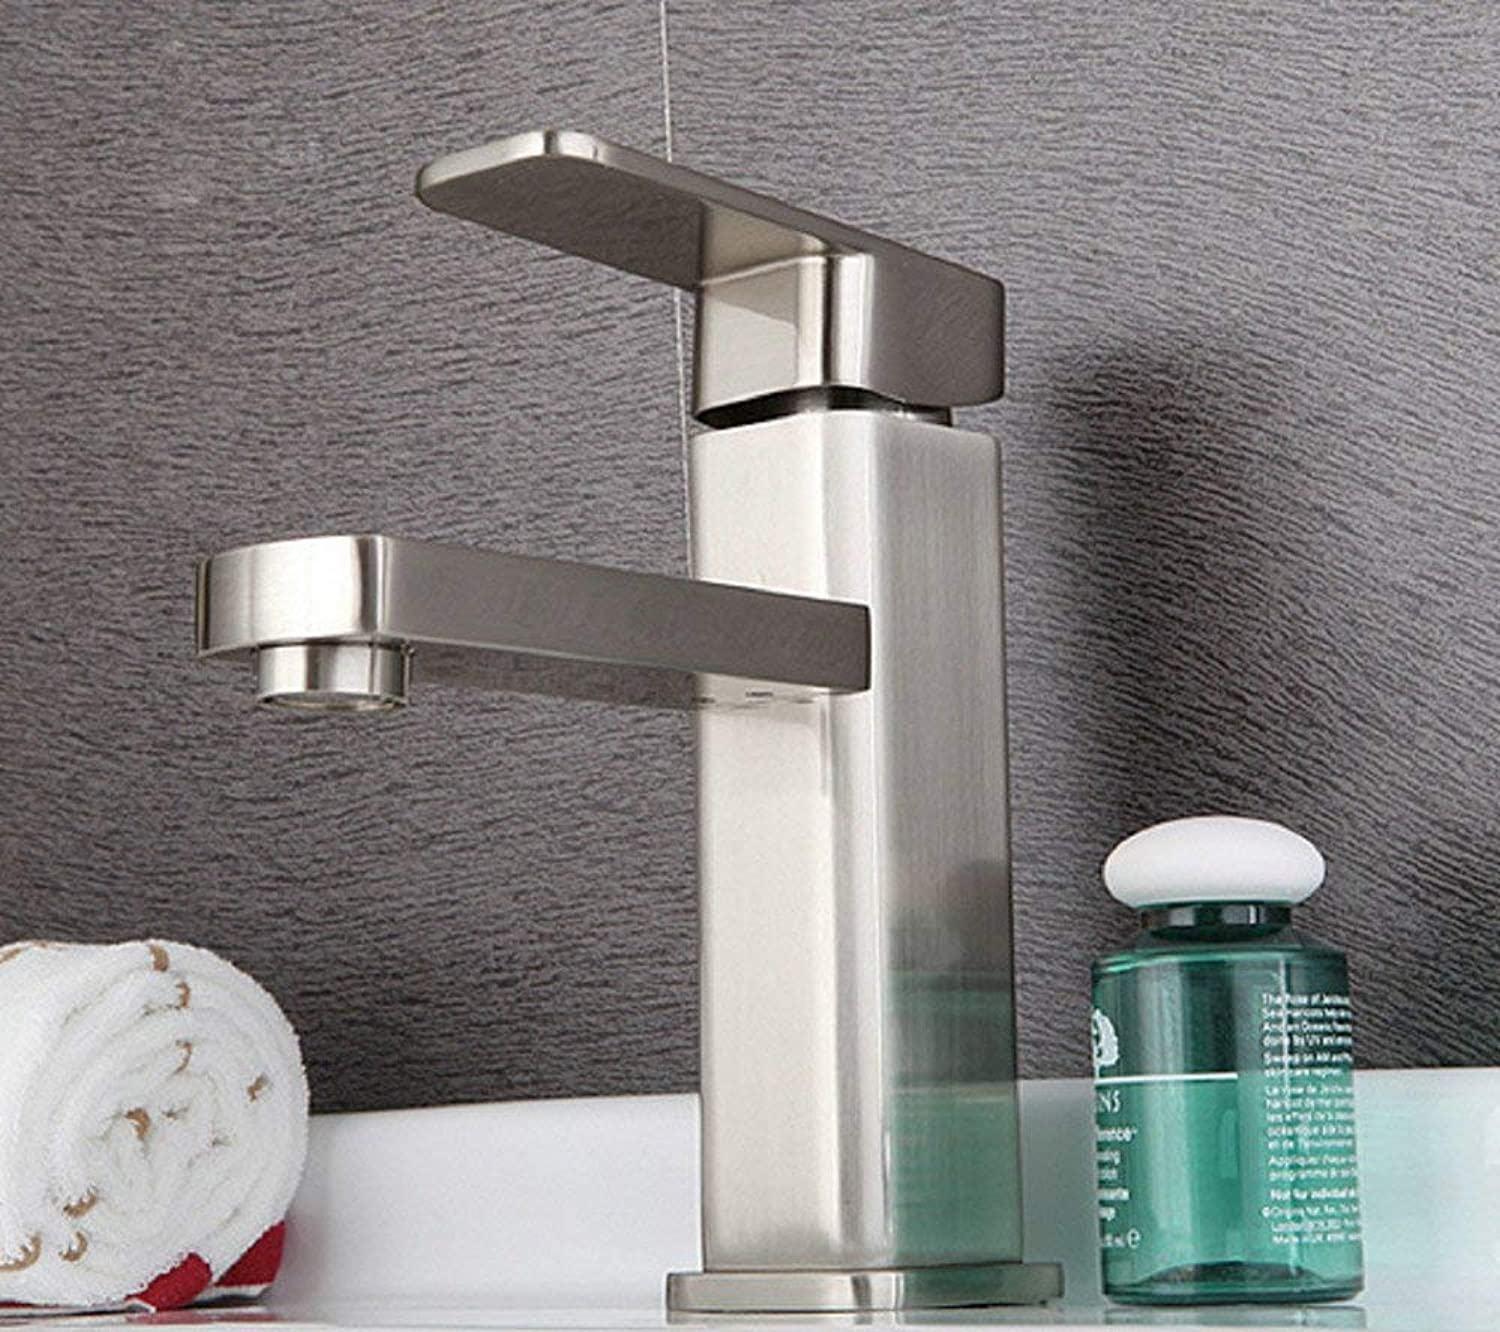 Oudan Basin Mixer Tap Bathroom Sink Faucet The Quartet's hot and cold single hole Stainless Steel Basin Sinks Faucets bathroom faucets water resistant to corrosion.